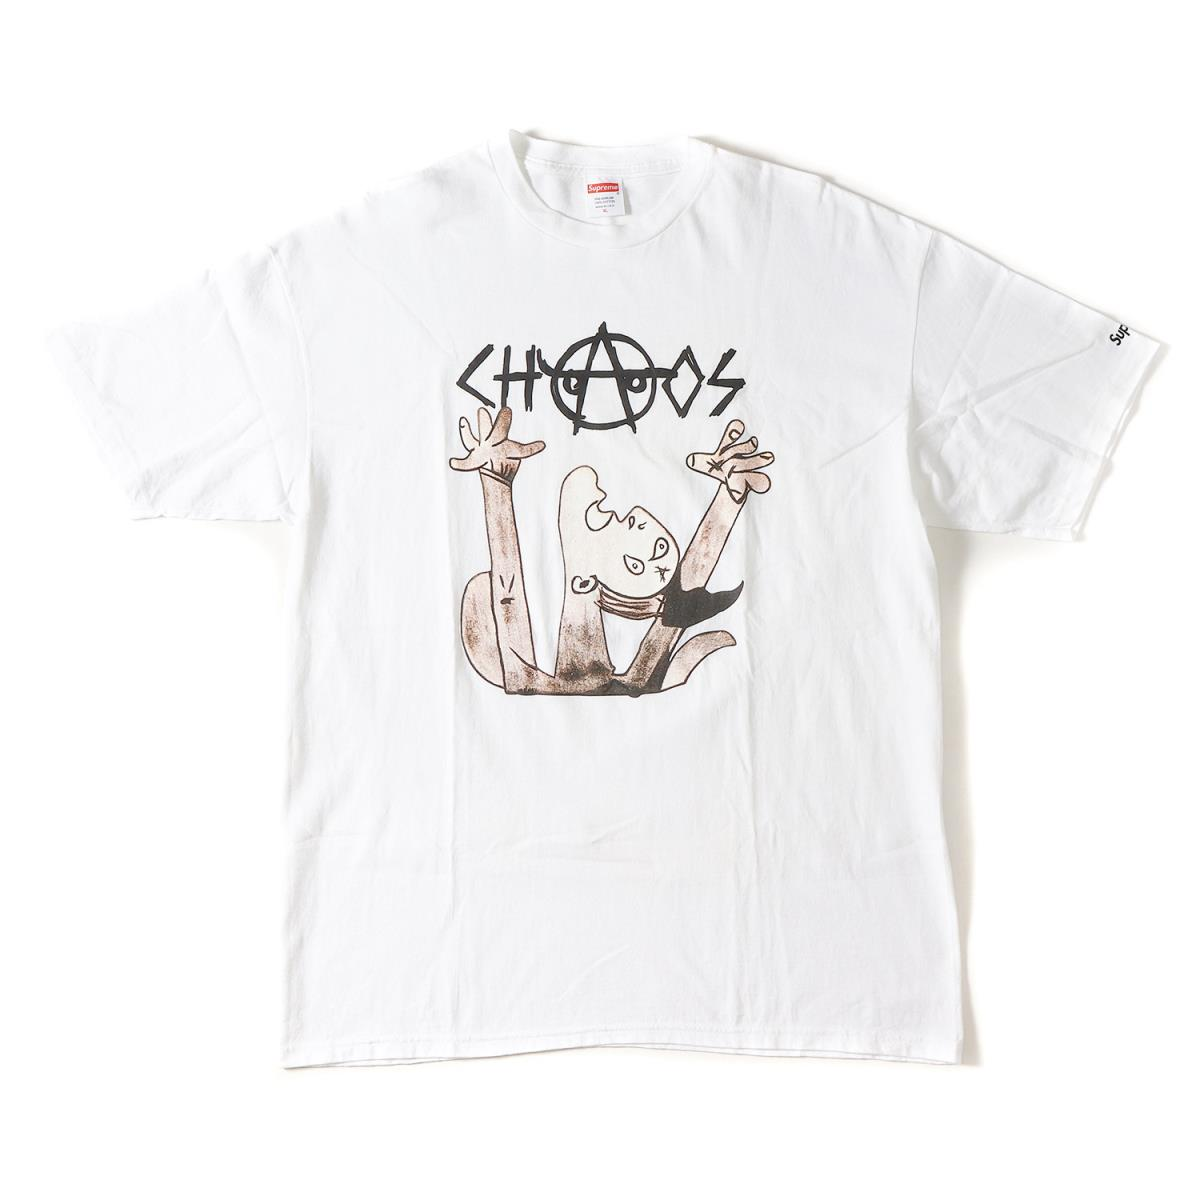 44830871cbcc BEEGLE by Boo-Bee: Supreme (シュプリーム) 10S/S chaos graphic T ...